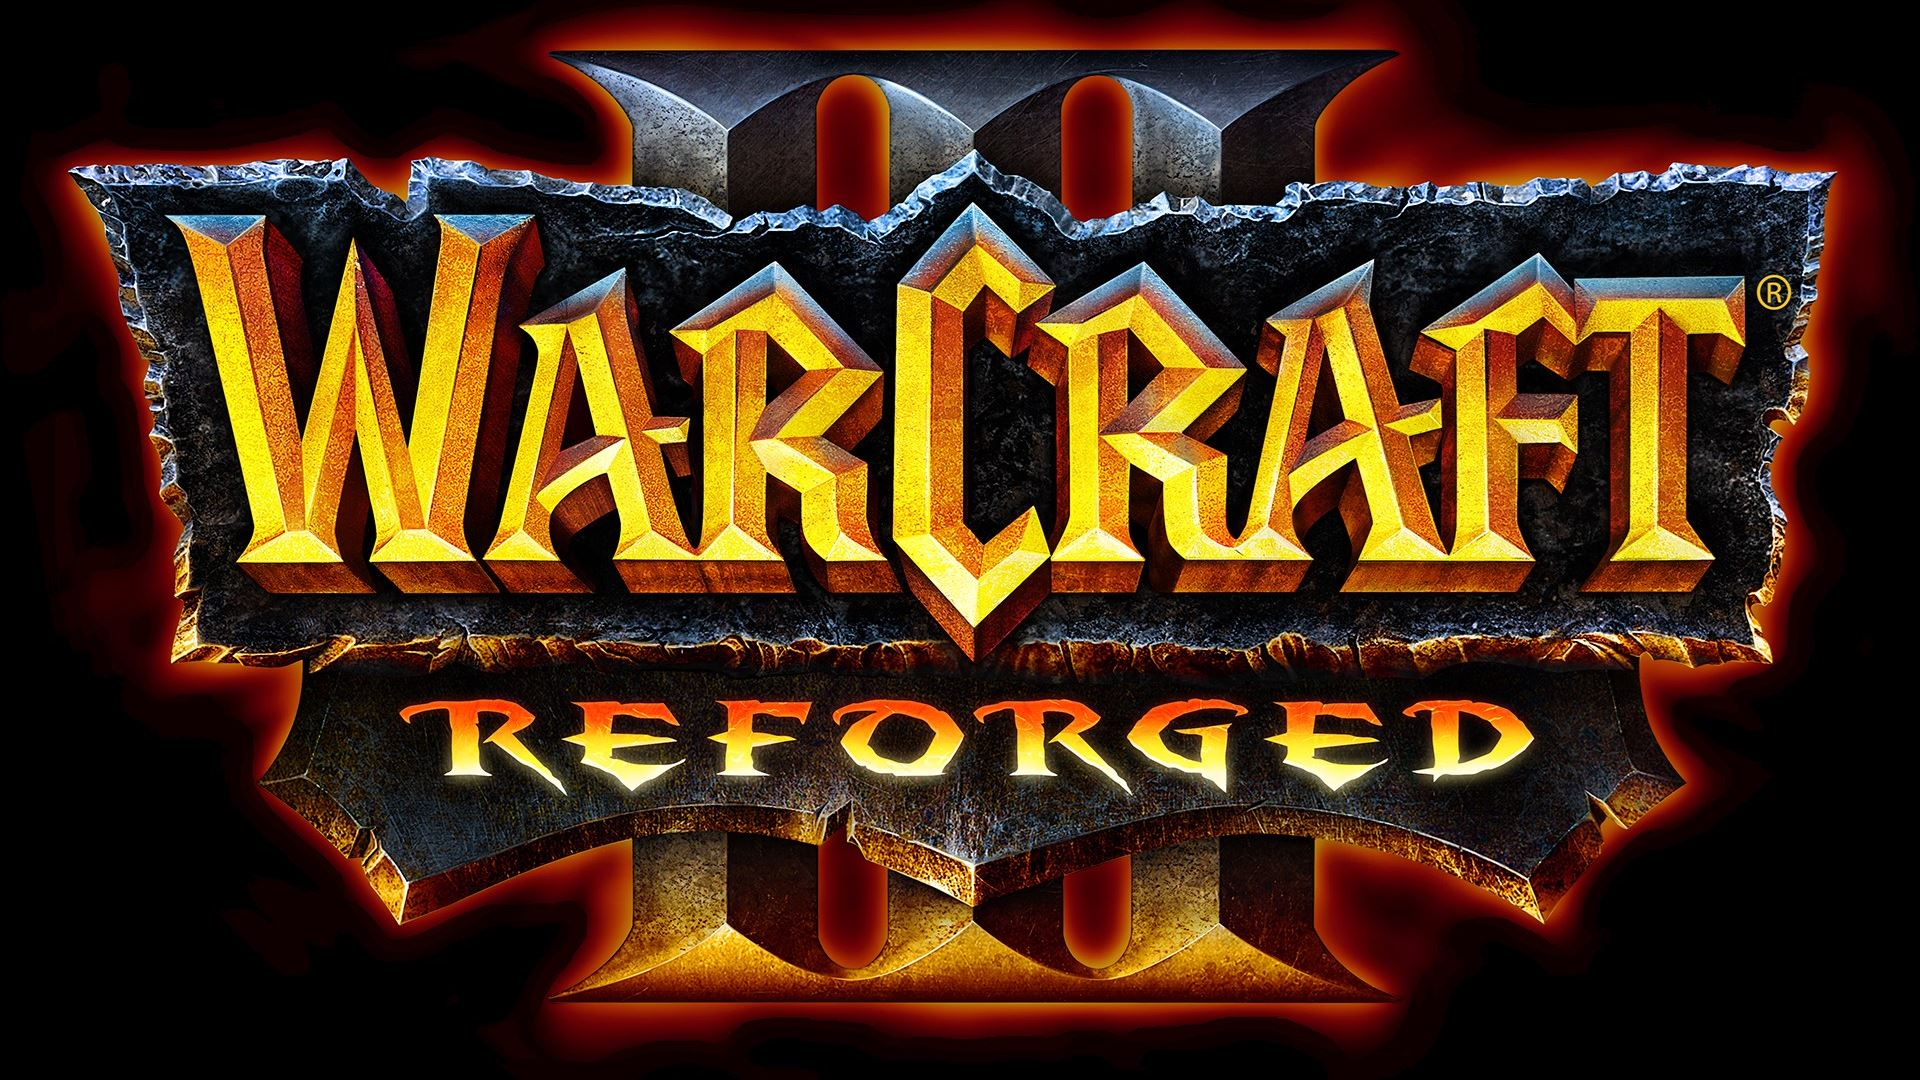 Warcraft Iii Reforged Hd Wallpaper Background Image 1920x1080